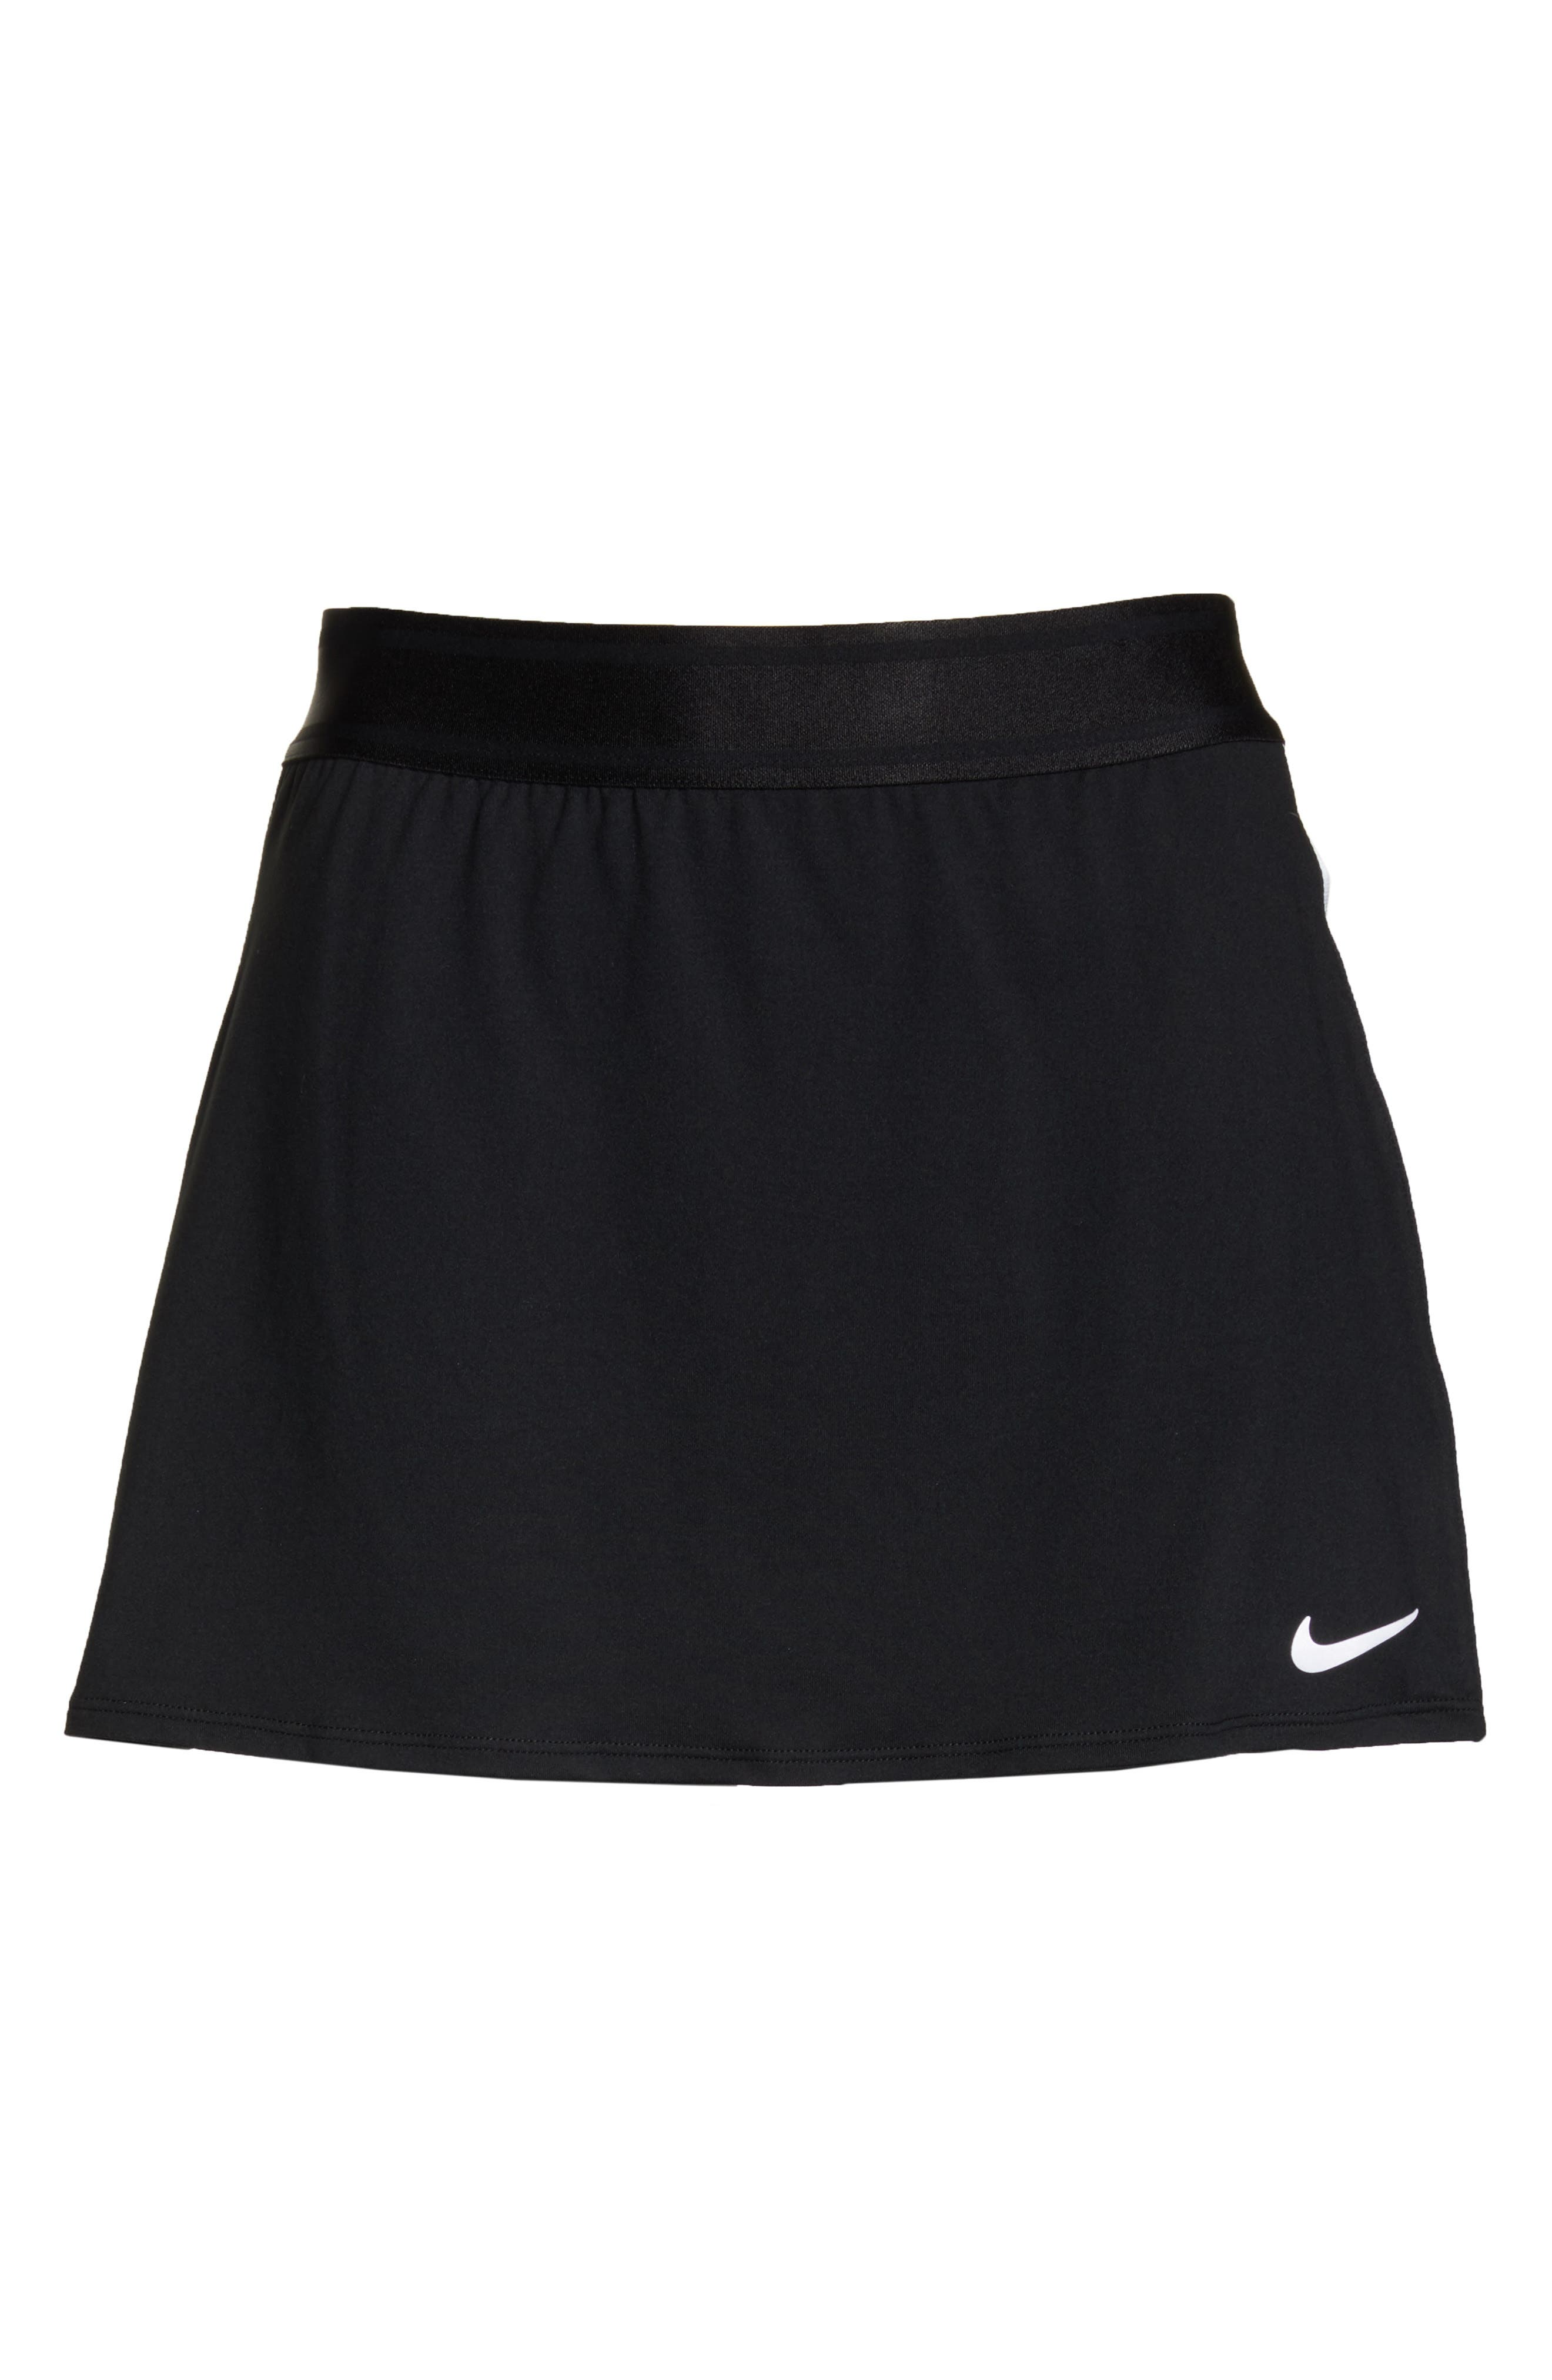 NIKE, Court Dry-FIT Tennis Skirt, Alternate thumbnail 7, color, BLACK/ WHITE/ WHITE/ BLACK